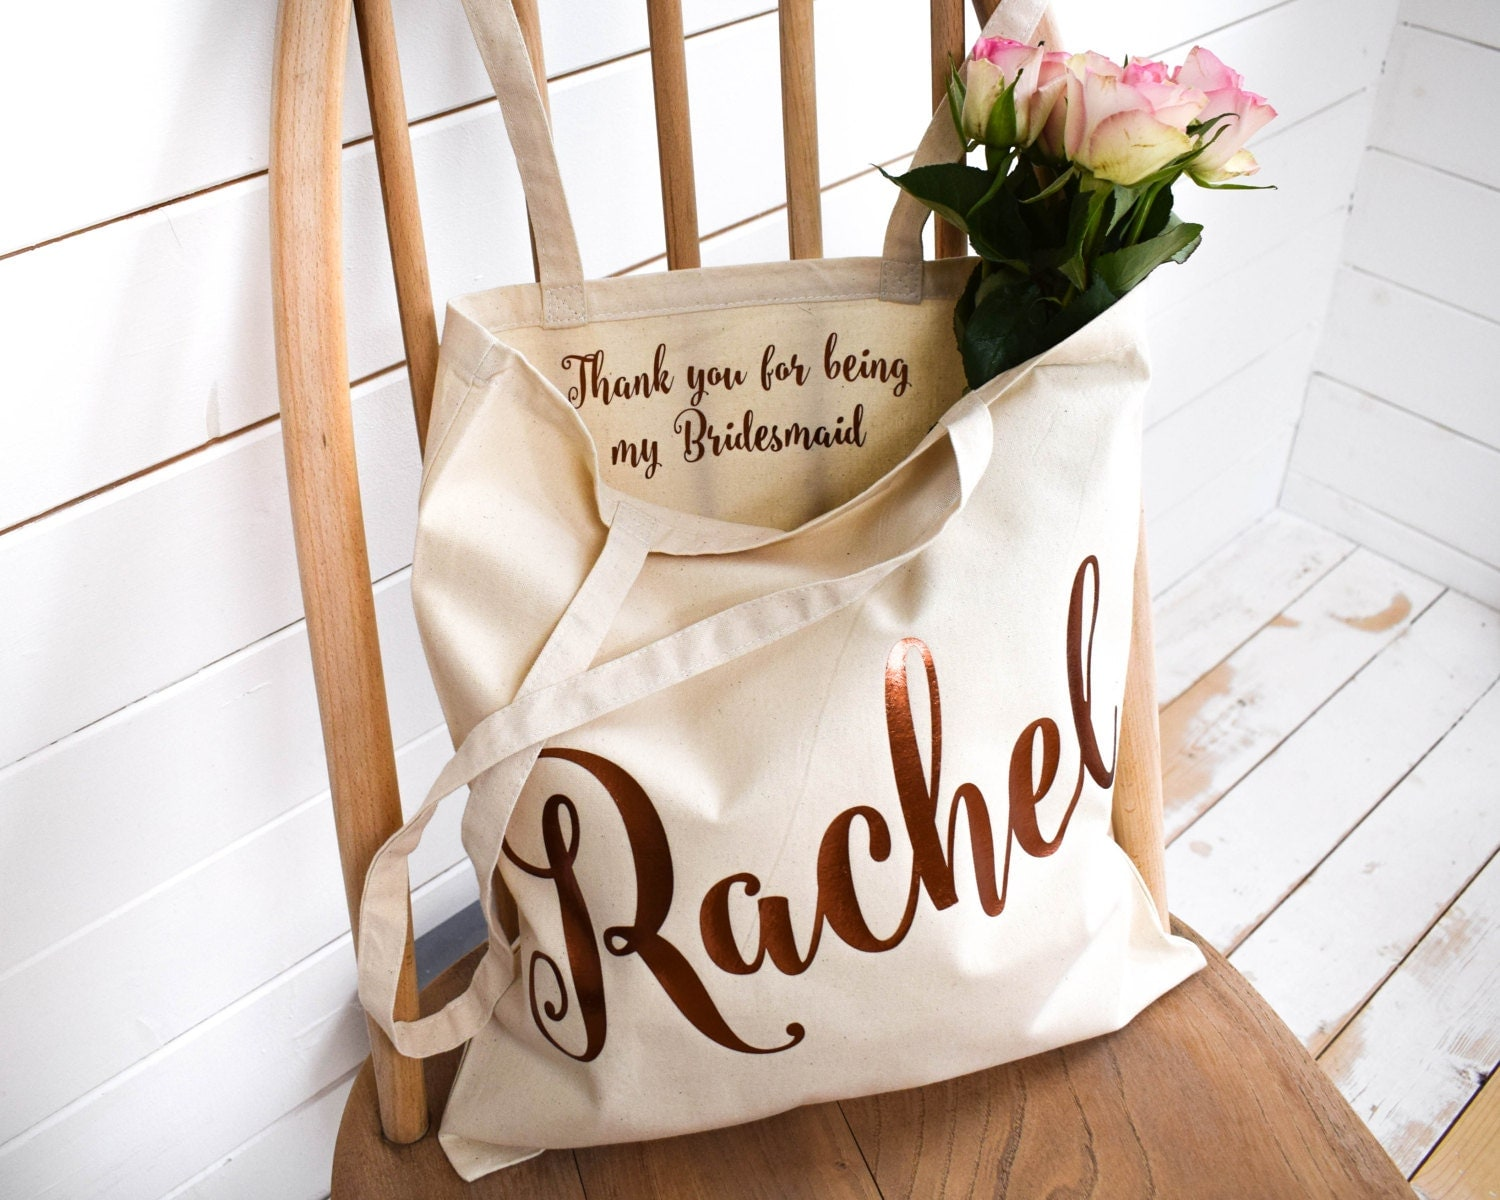 Wedding Gifts From Bridesmaids: Wedding Thank You Gift Personalised Bridesmaid Gift Tote Bag